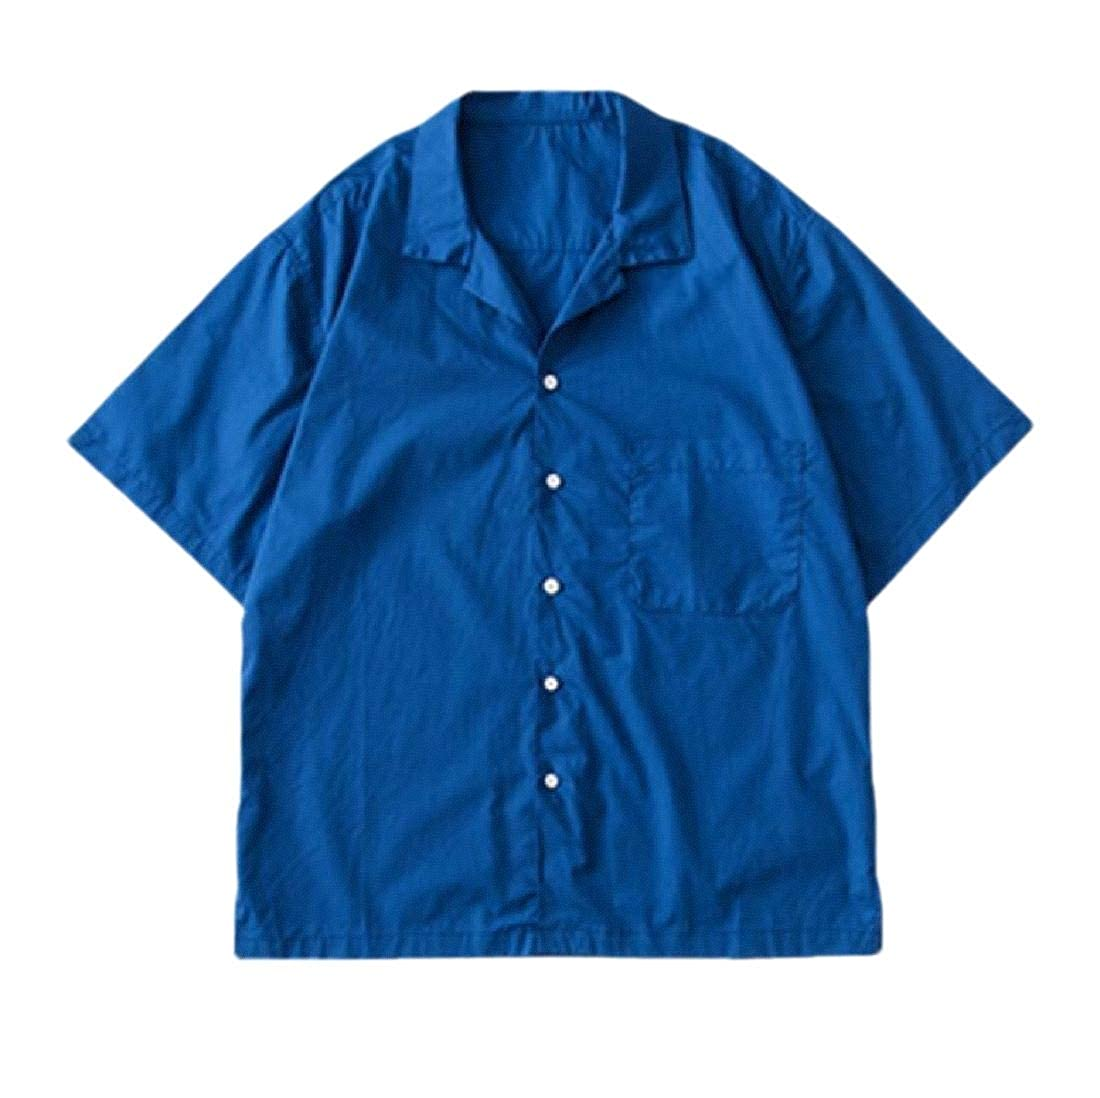 Mens Short Sleeves Shirts Botton Down Tops Plain Summer Blouses